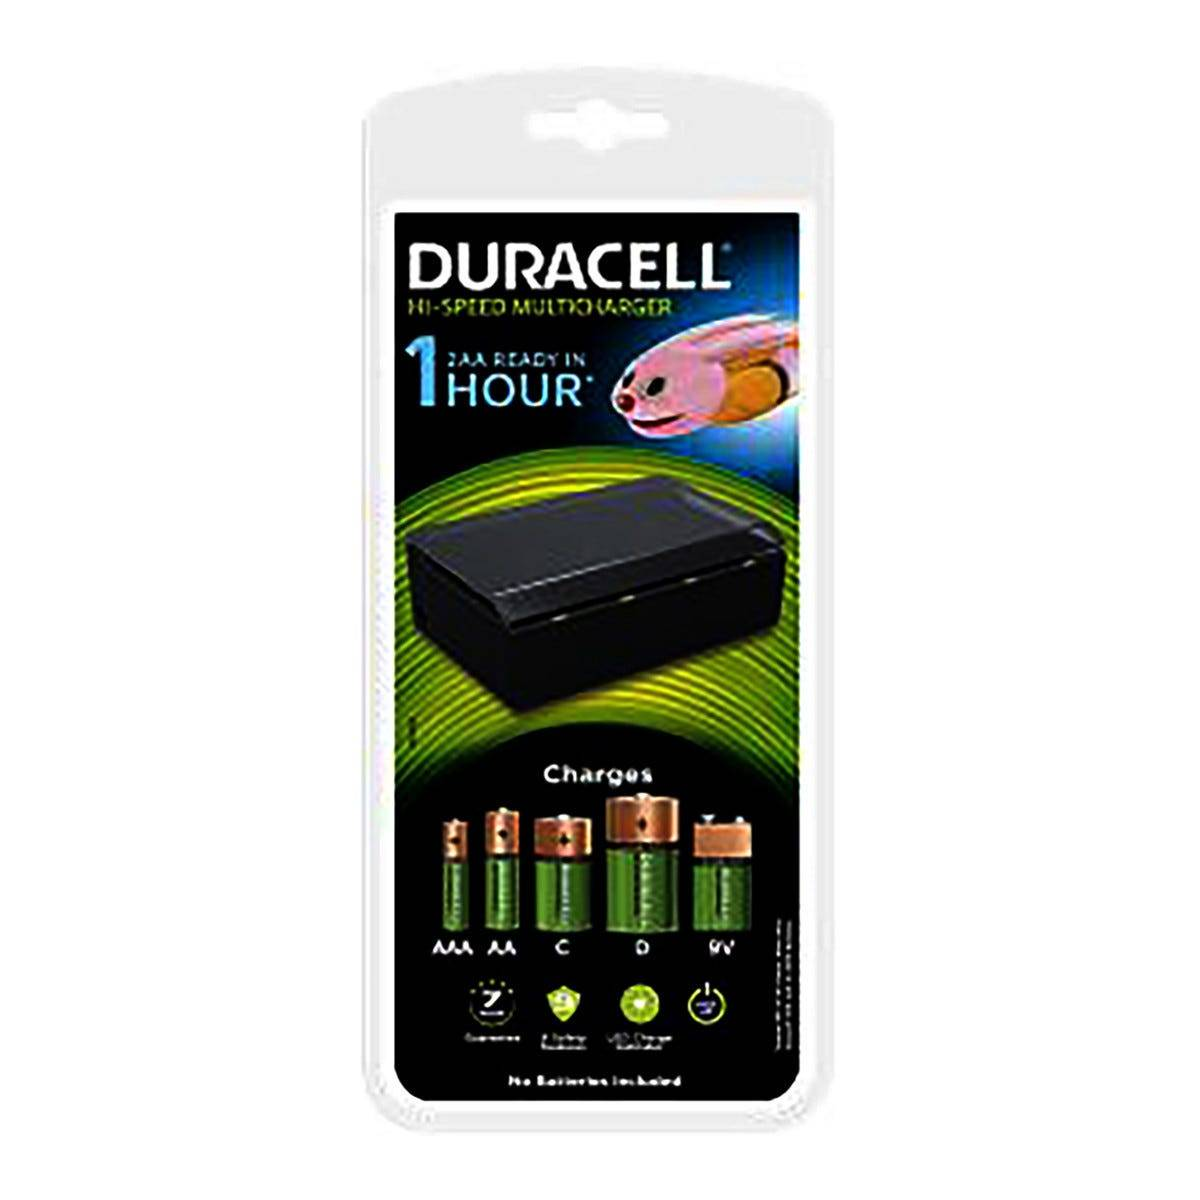 PROXE Caricabatteria Duracell Per Batterie Ricaricabili Tipo Aa/aaa Completo Di 4 Batterie 230v